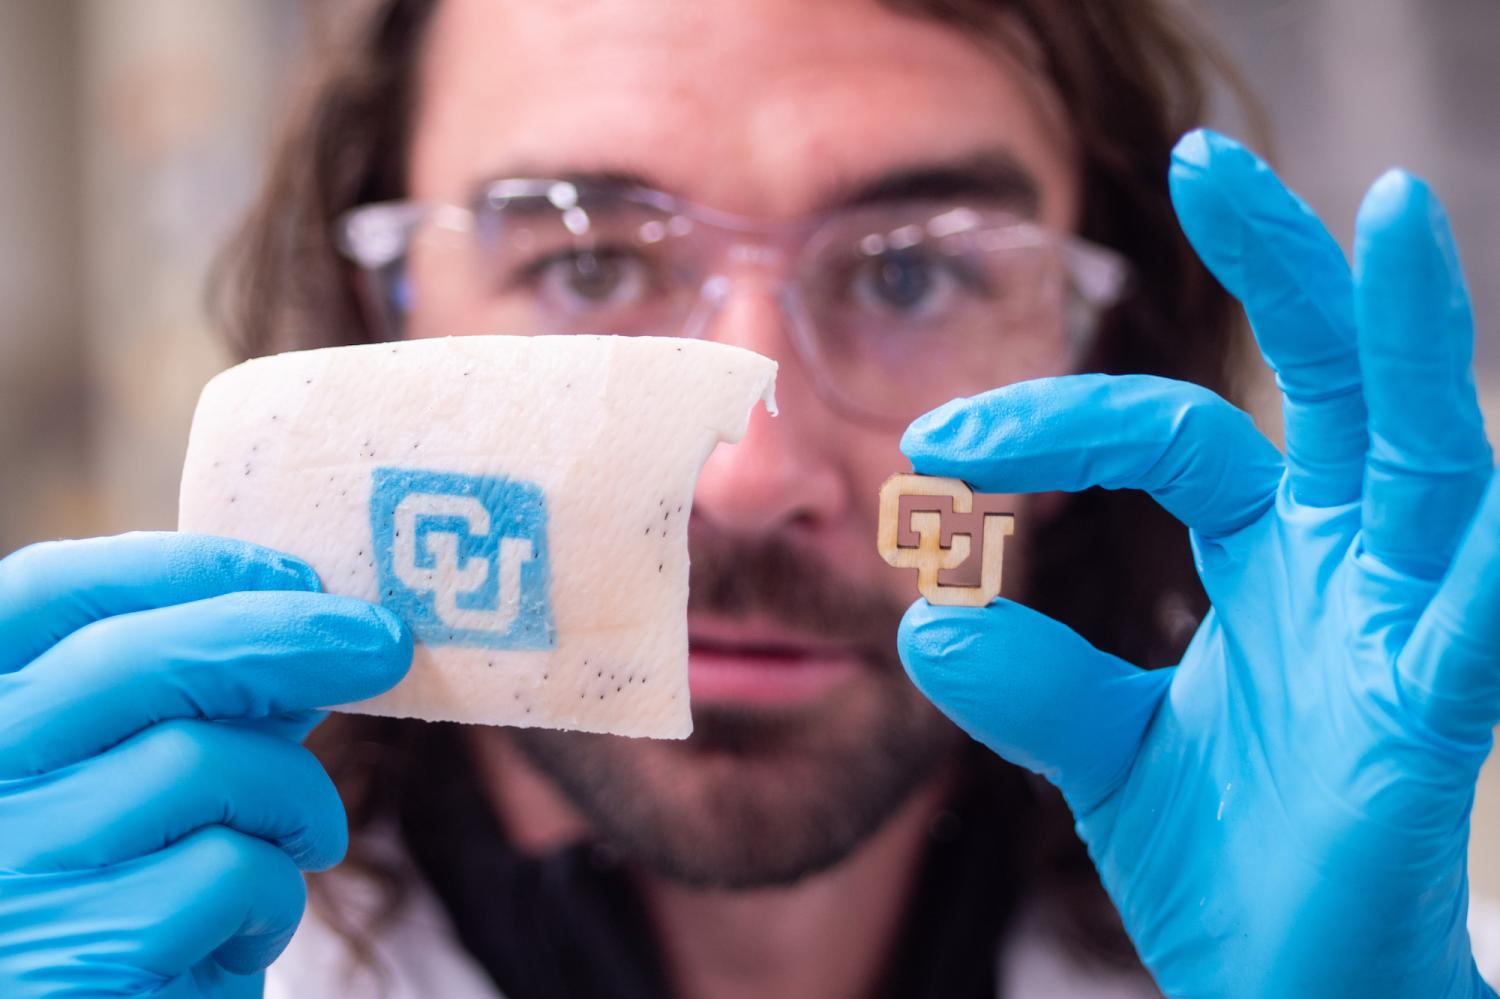 Carson Bruns, holds his gloved hands forward and holds a CU logo and a piece of pig's skin with the logo that covered the pigskin leaving CU without color and the rest of the exposed pig skin in blue ink, thereby making it possible to read the CU logo.